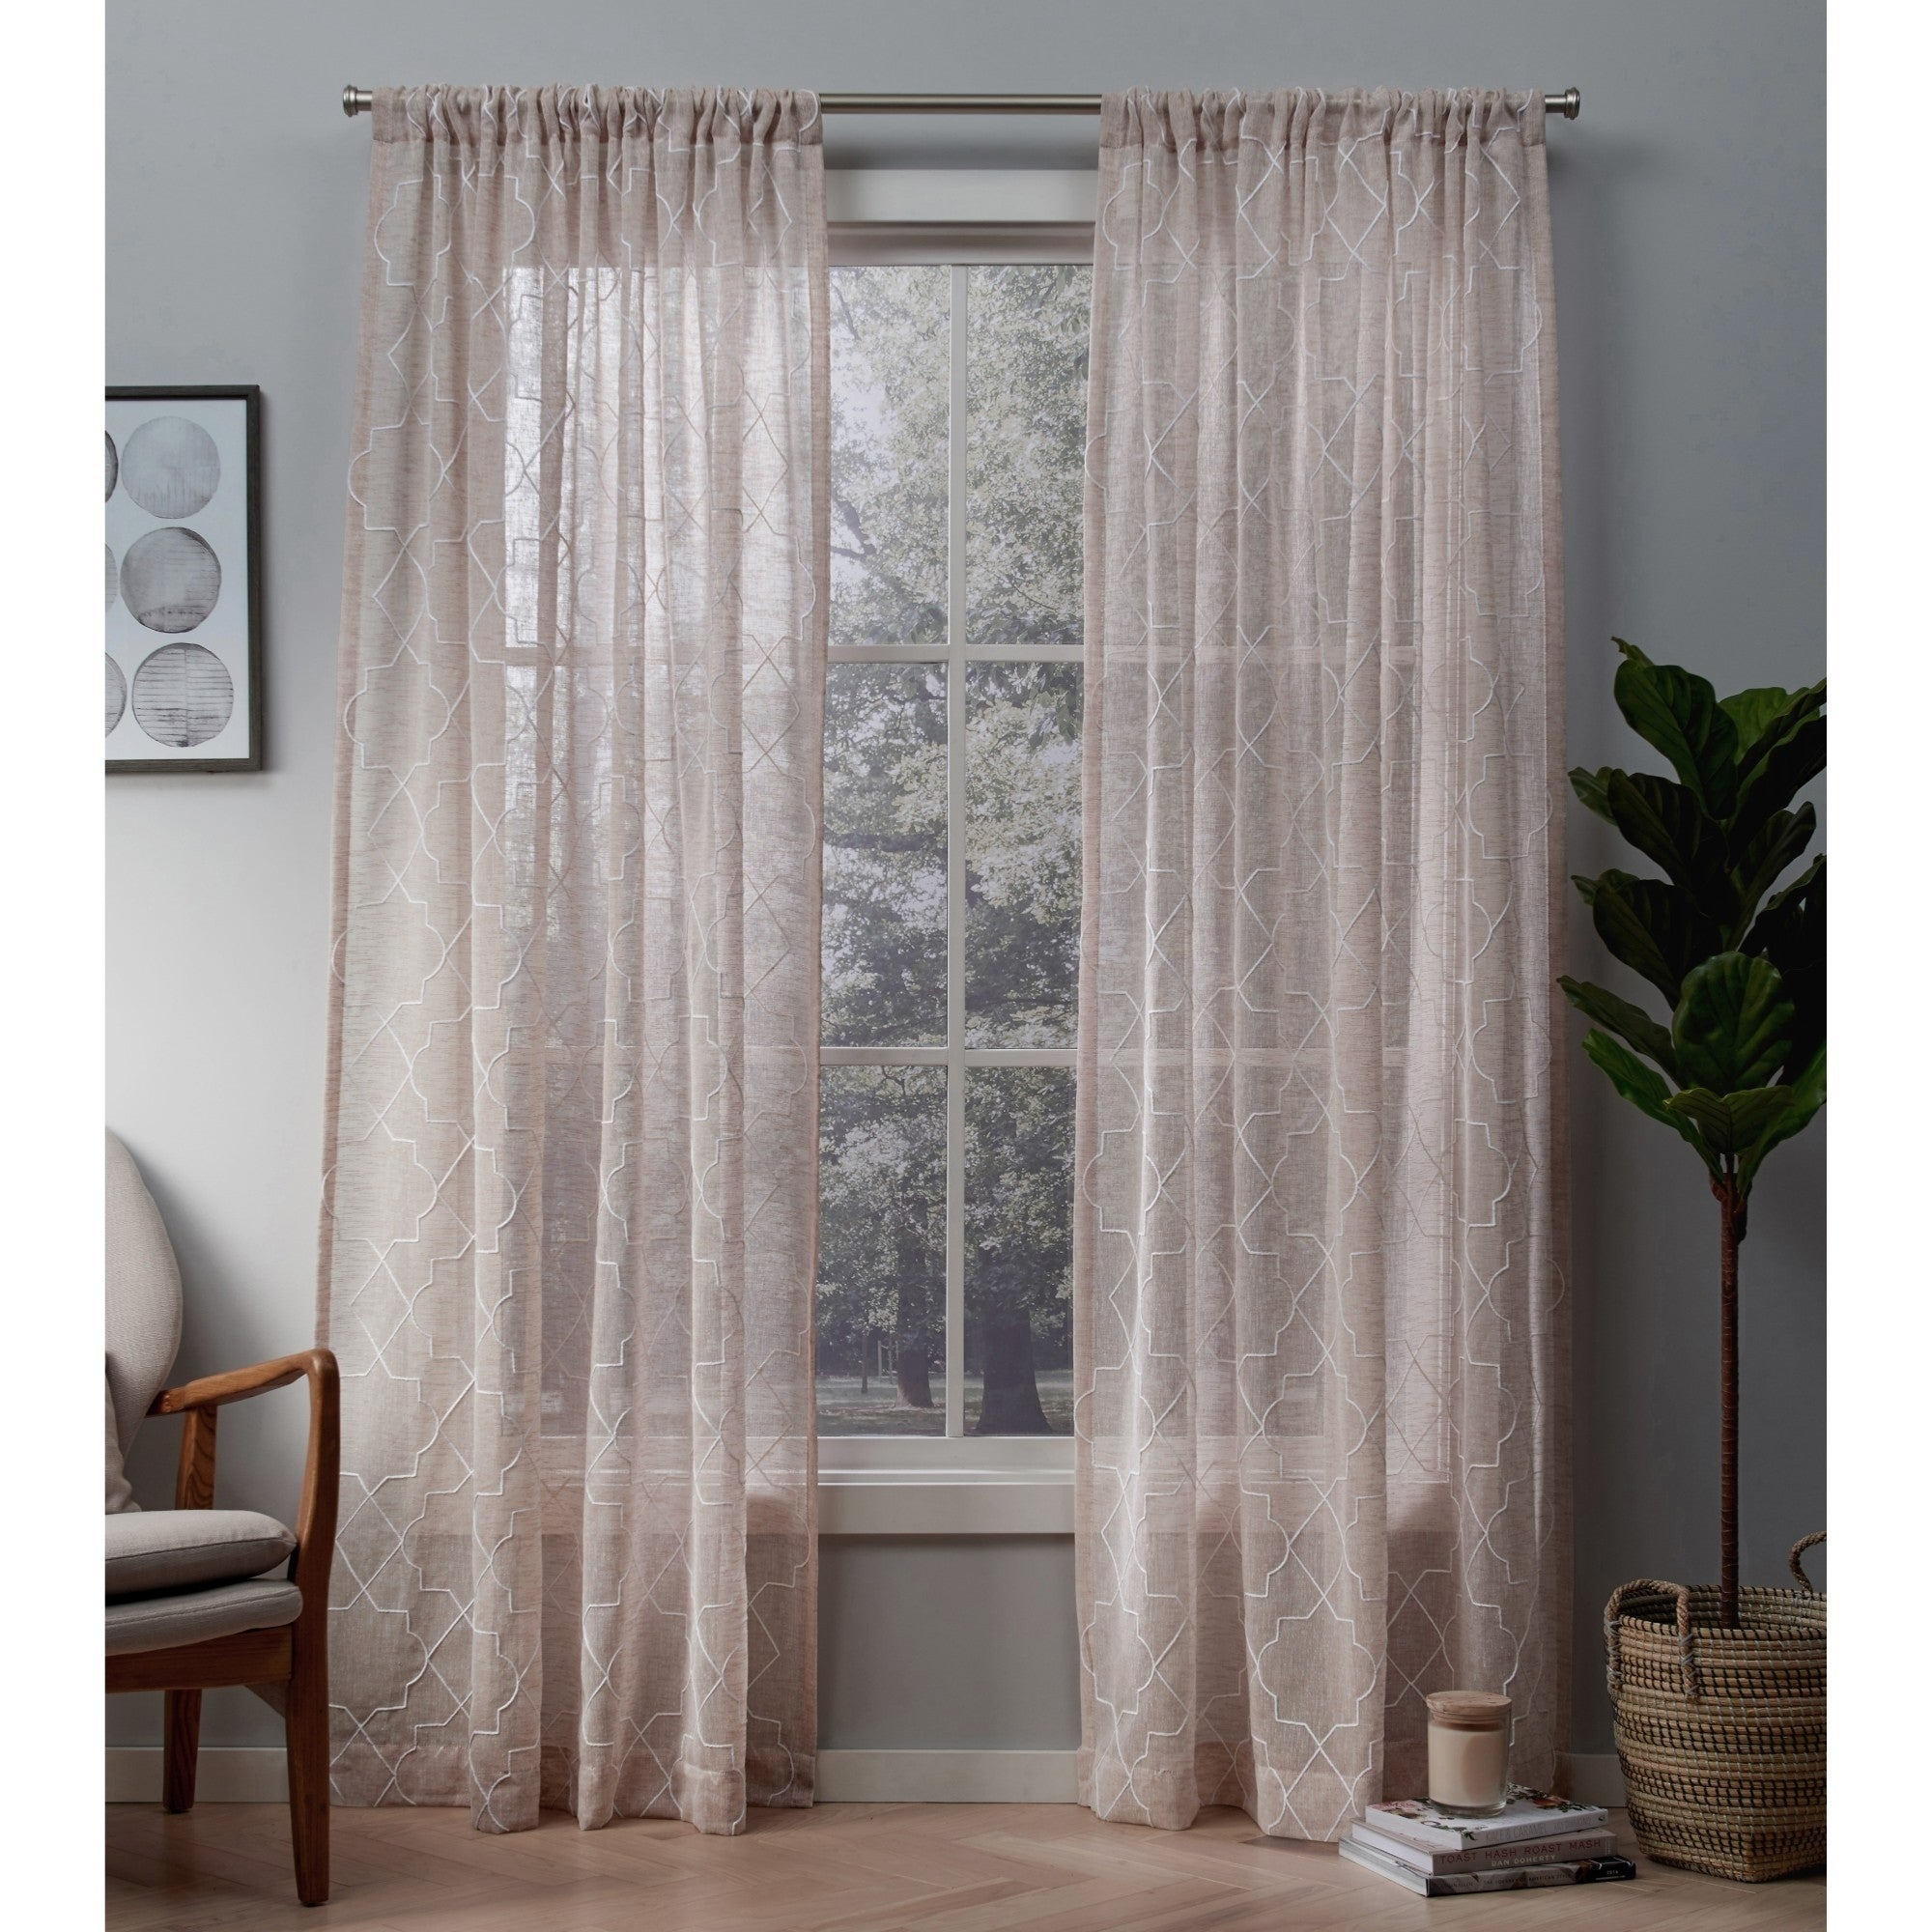 Ati Home Cali Embroidered Sheer Rod Pocket Top Curtain Panel